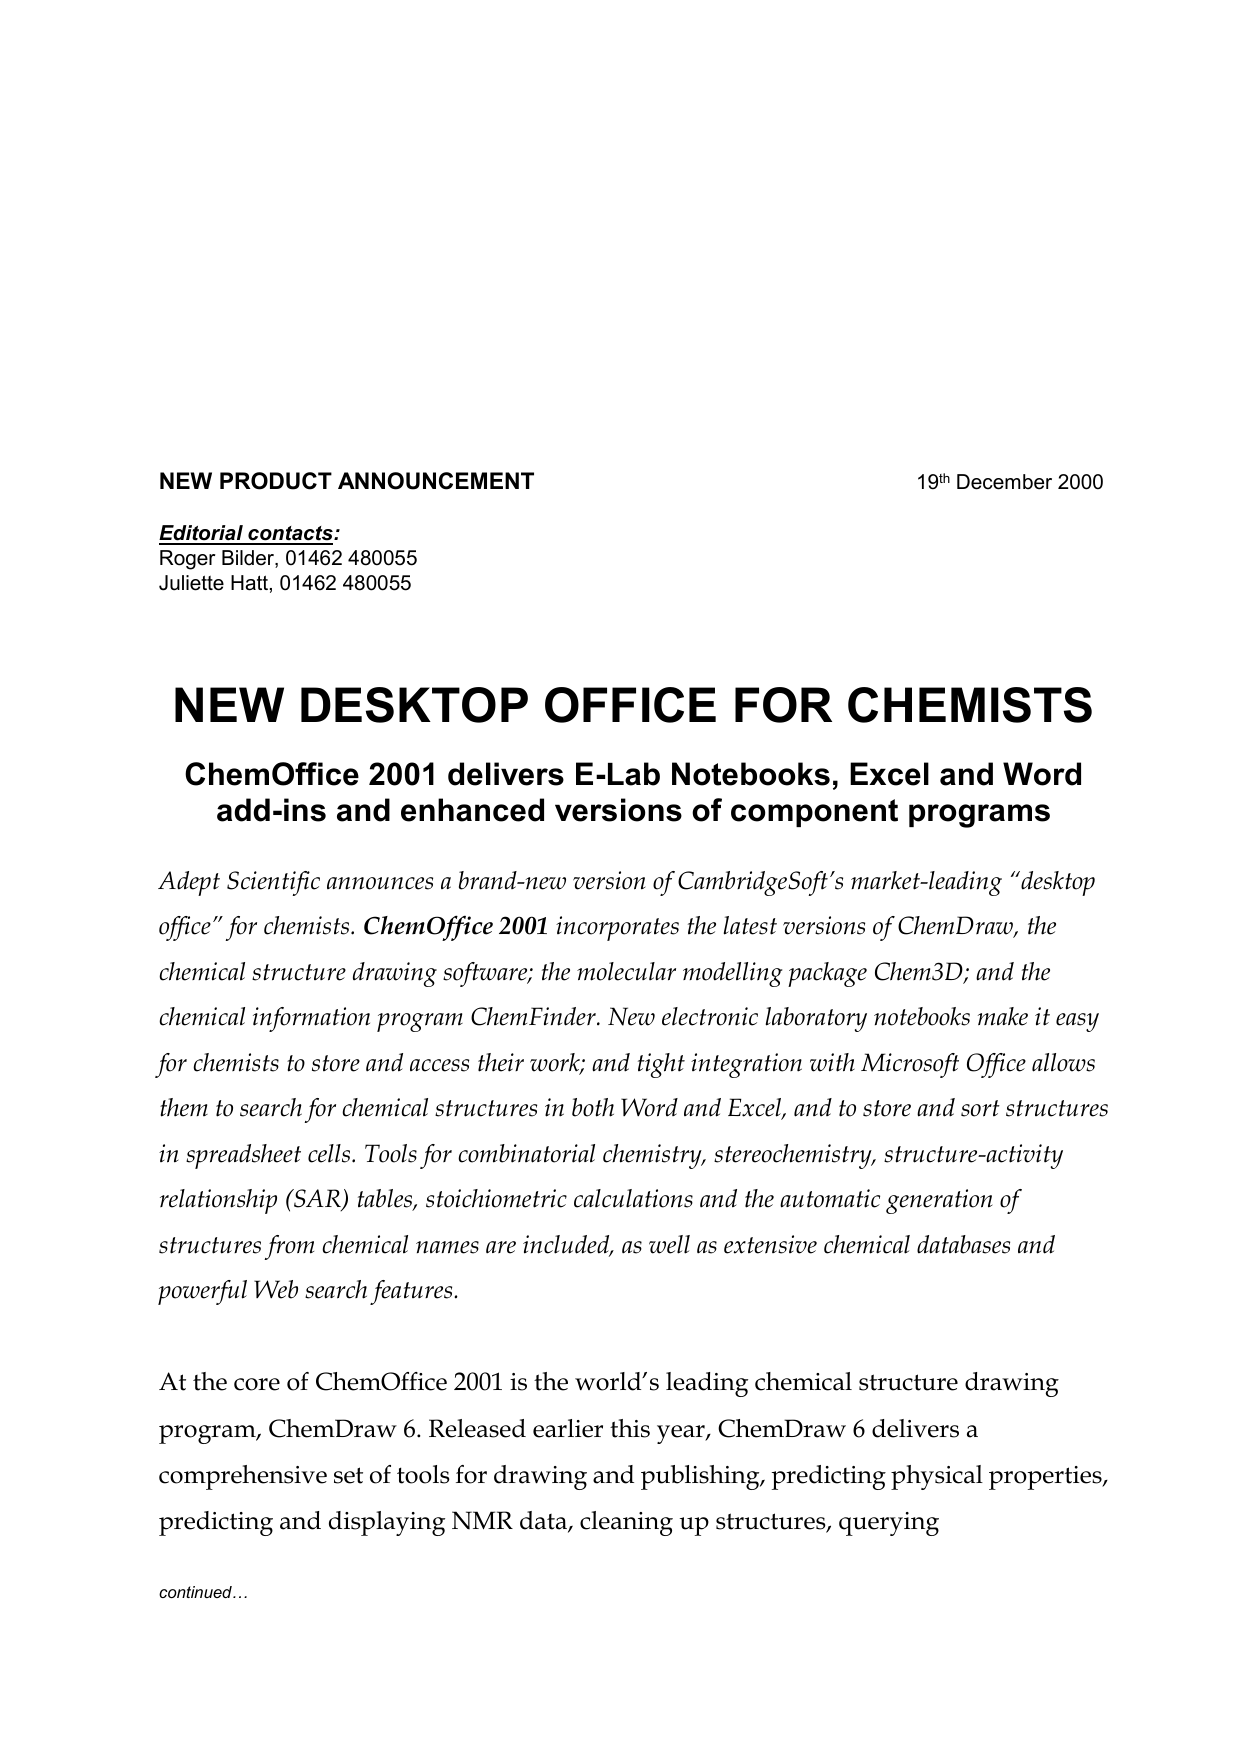 new desktop office for chemists